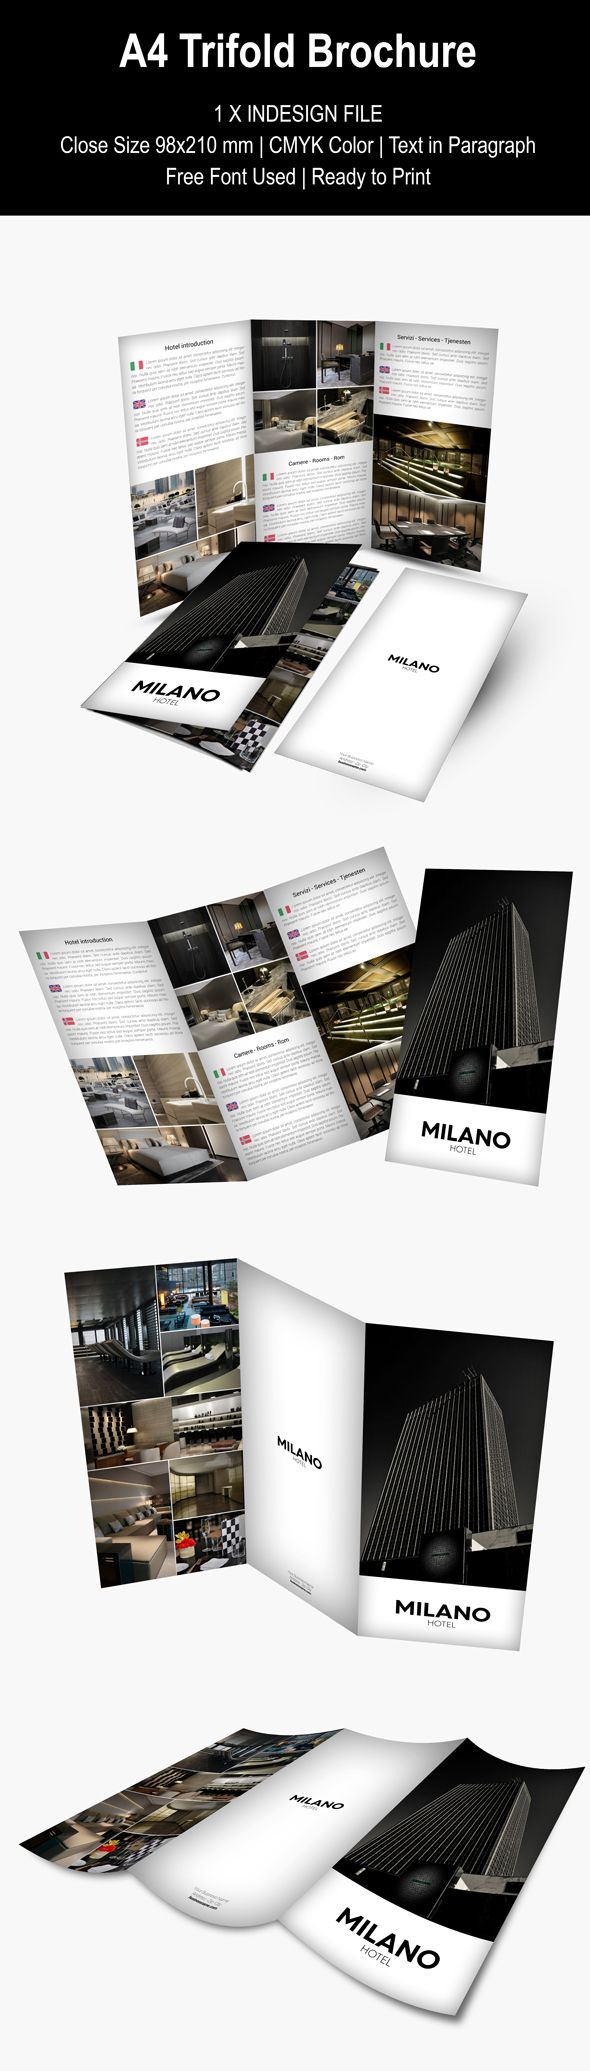 A4 TRIFOLD BROCHURE  This item is available for sale on Envato MarketPlace http://graphicriver.net/item/a4-trifold-brochure/9377018?WT.ac=portfolio&WT.z_author=Webnovo